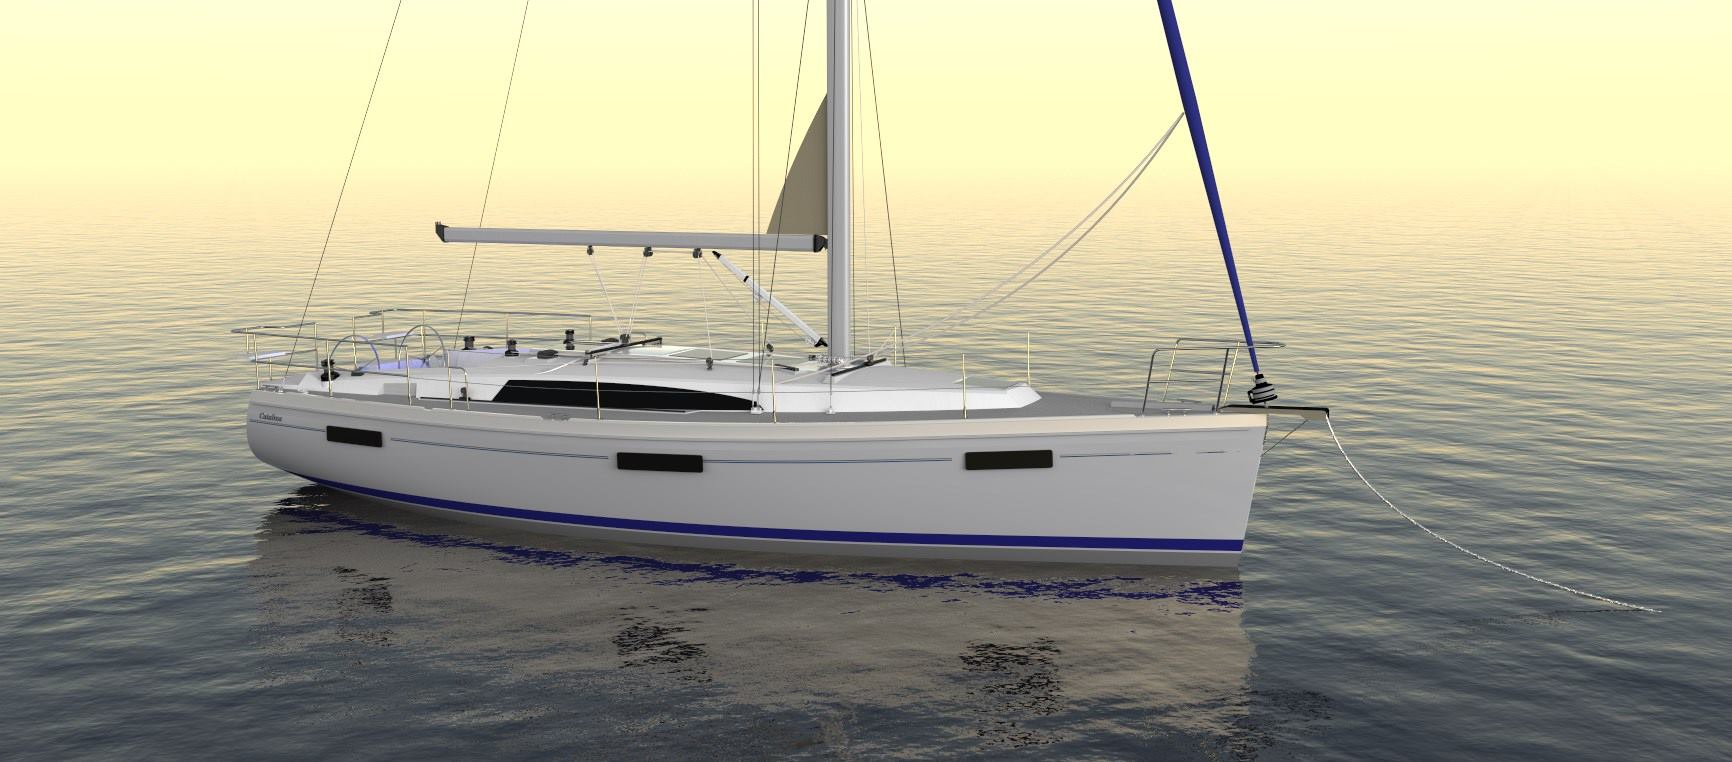 Catalina 425 – Deltaville Yachting Center and Chesapeake